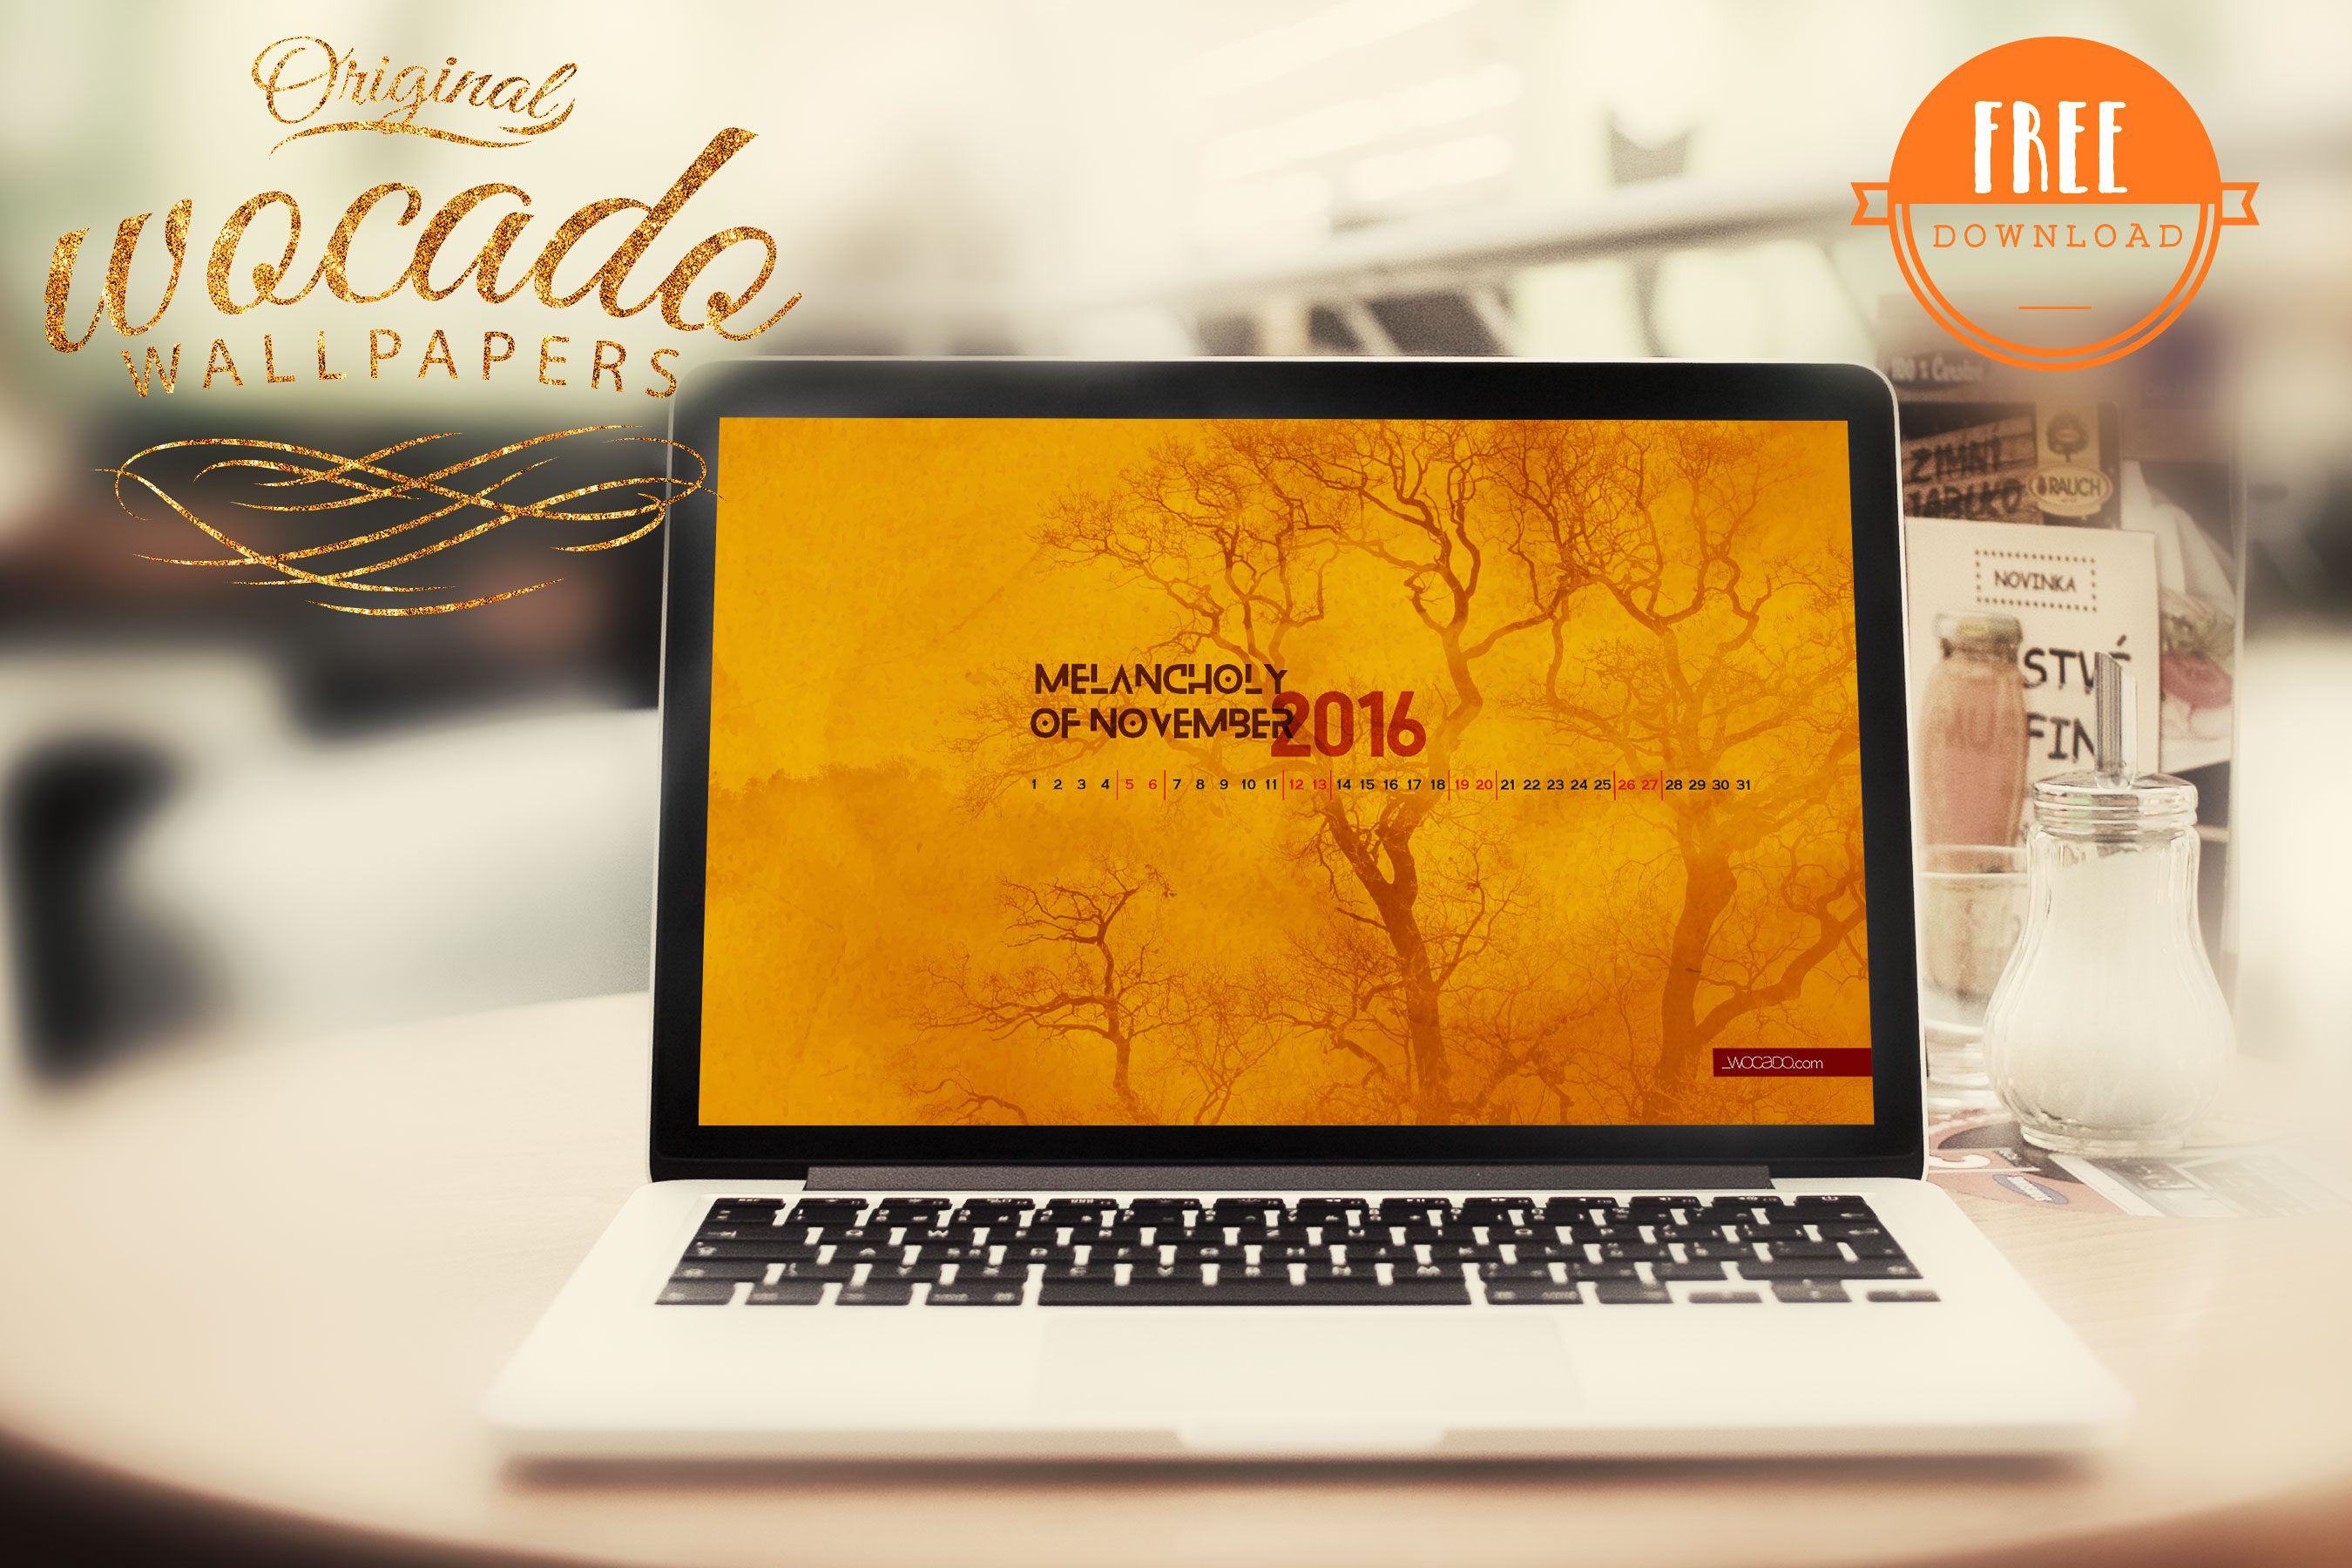 Melancholy of November 2016 Calendar Wallpaper by WOCADO - FREE Download